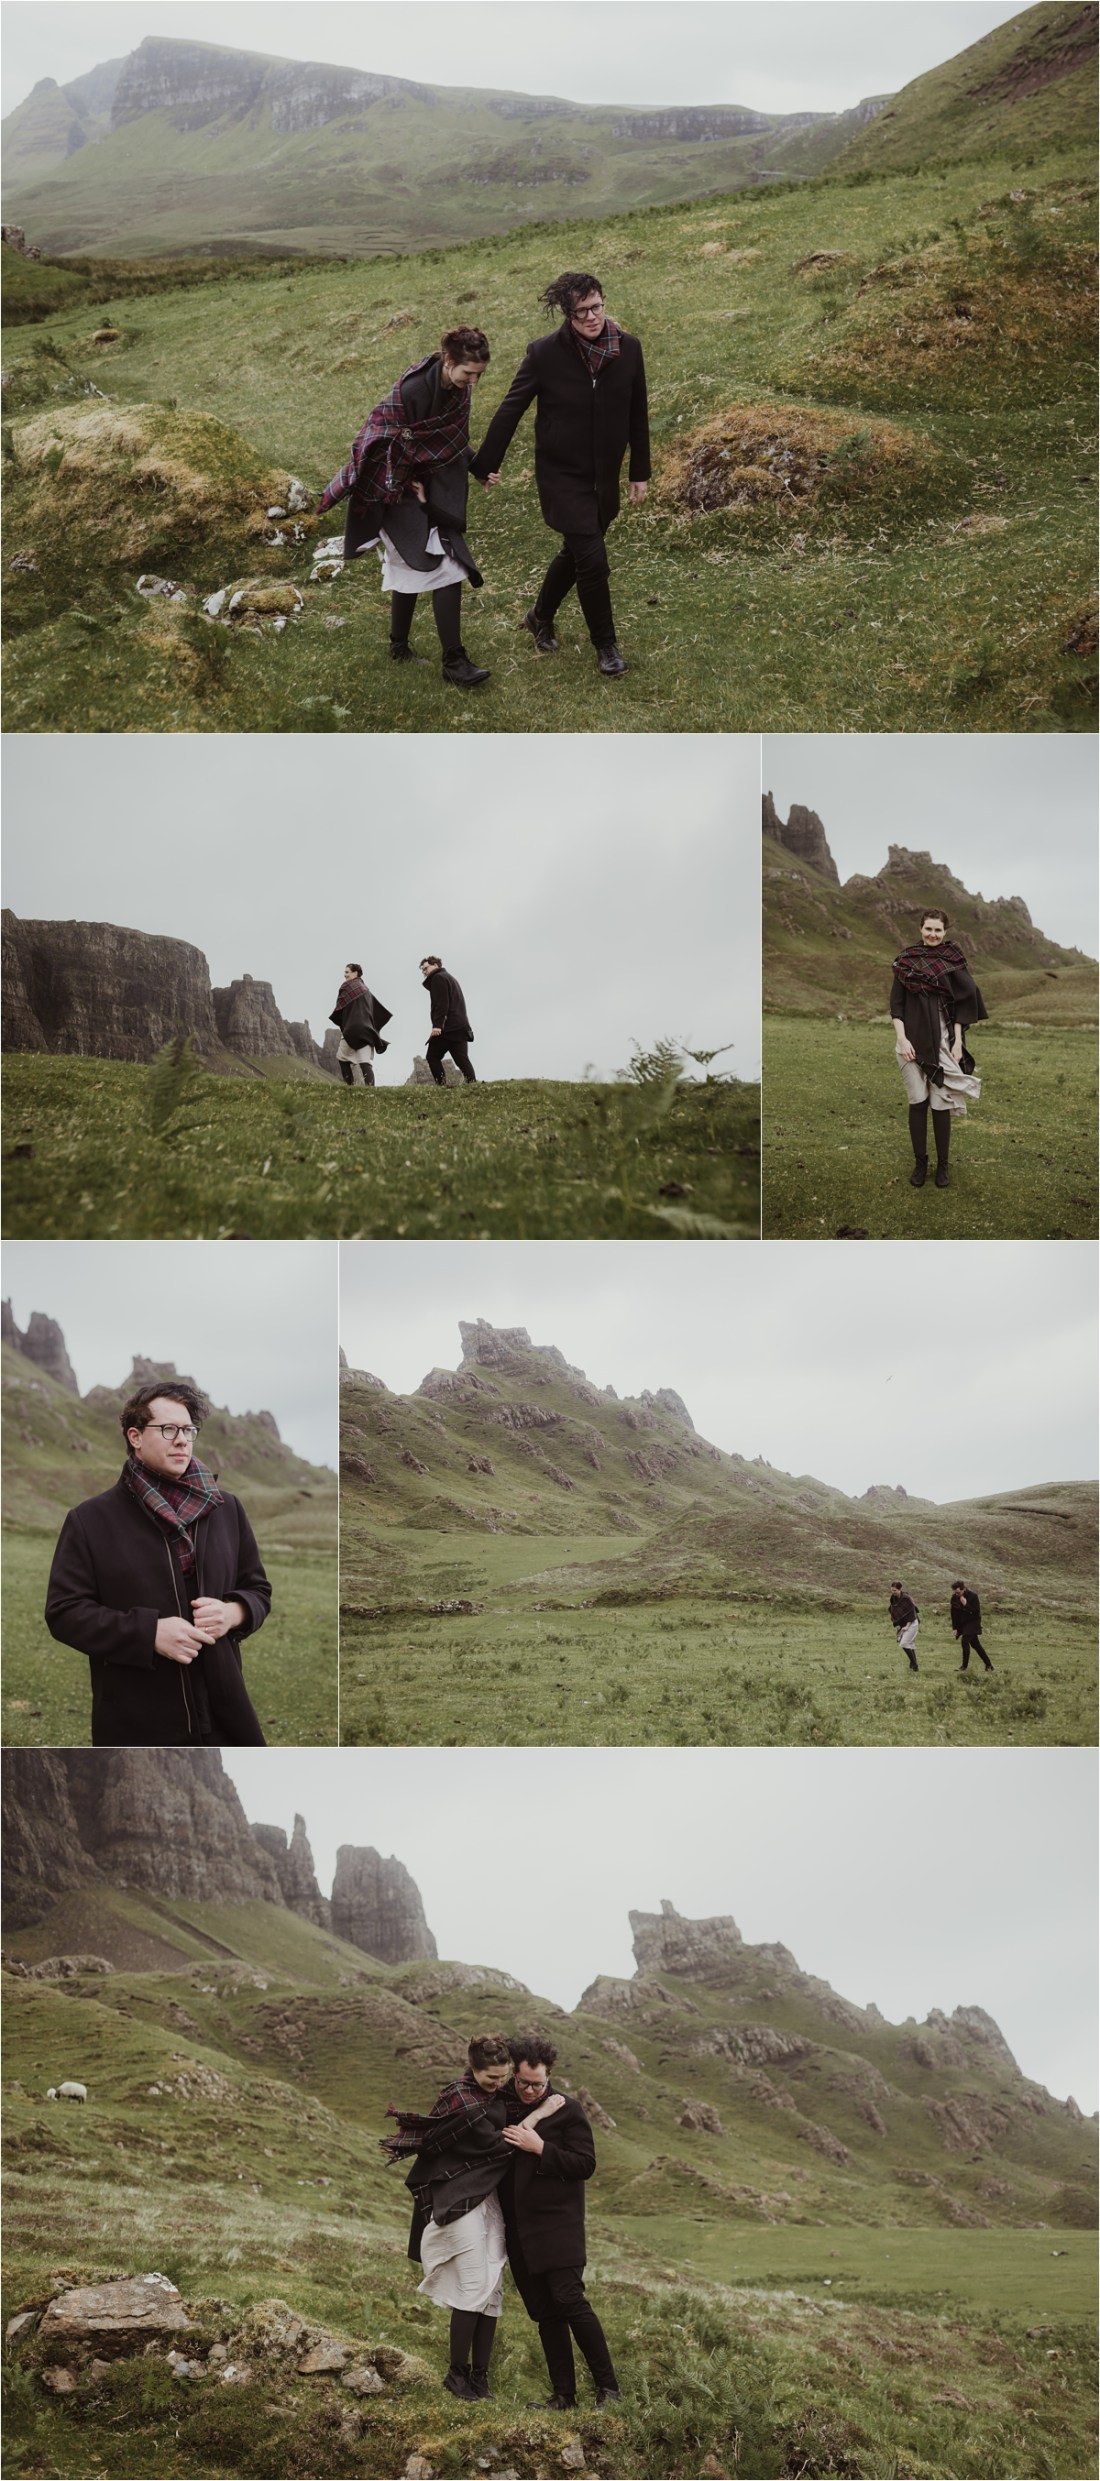 The newlyweds explore the windy Isle of Skye after their elopement ceremony. Photographed by Maureen du Preez